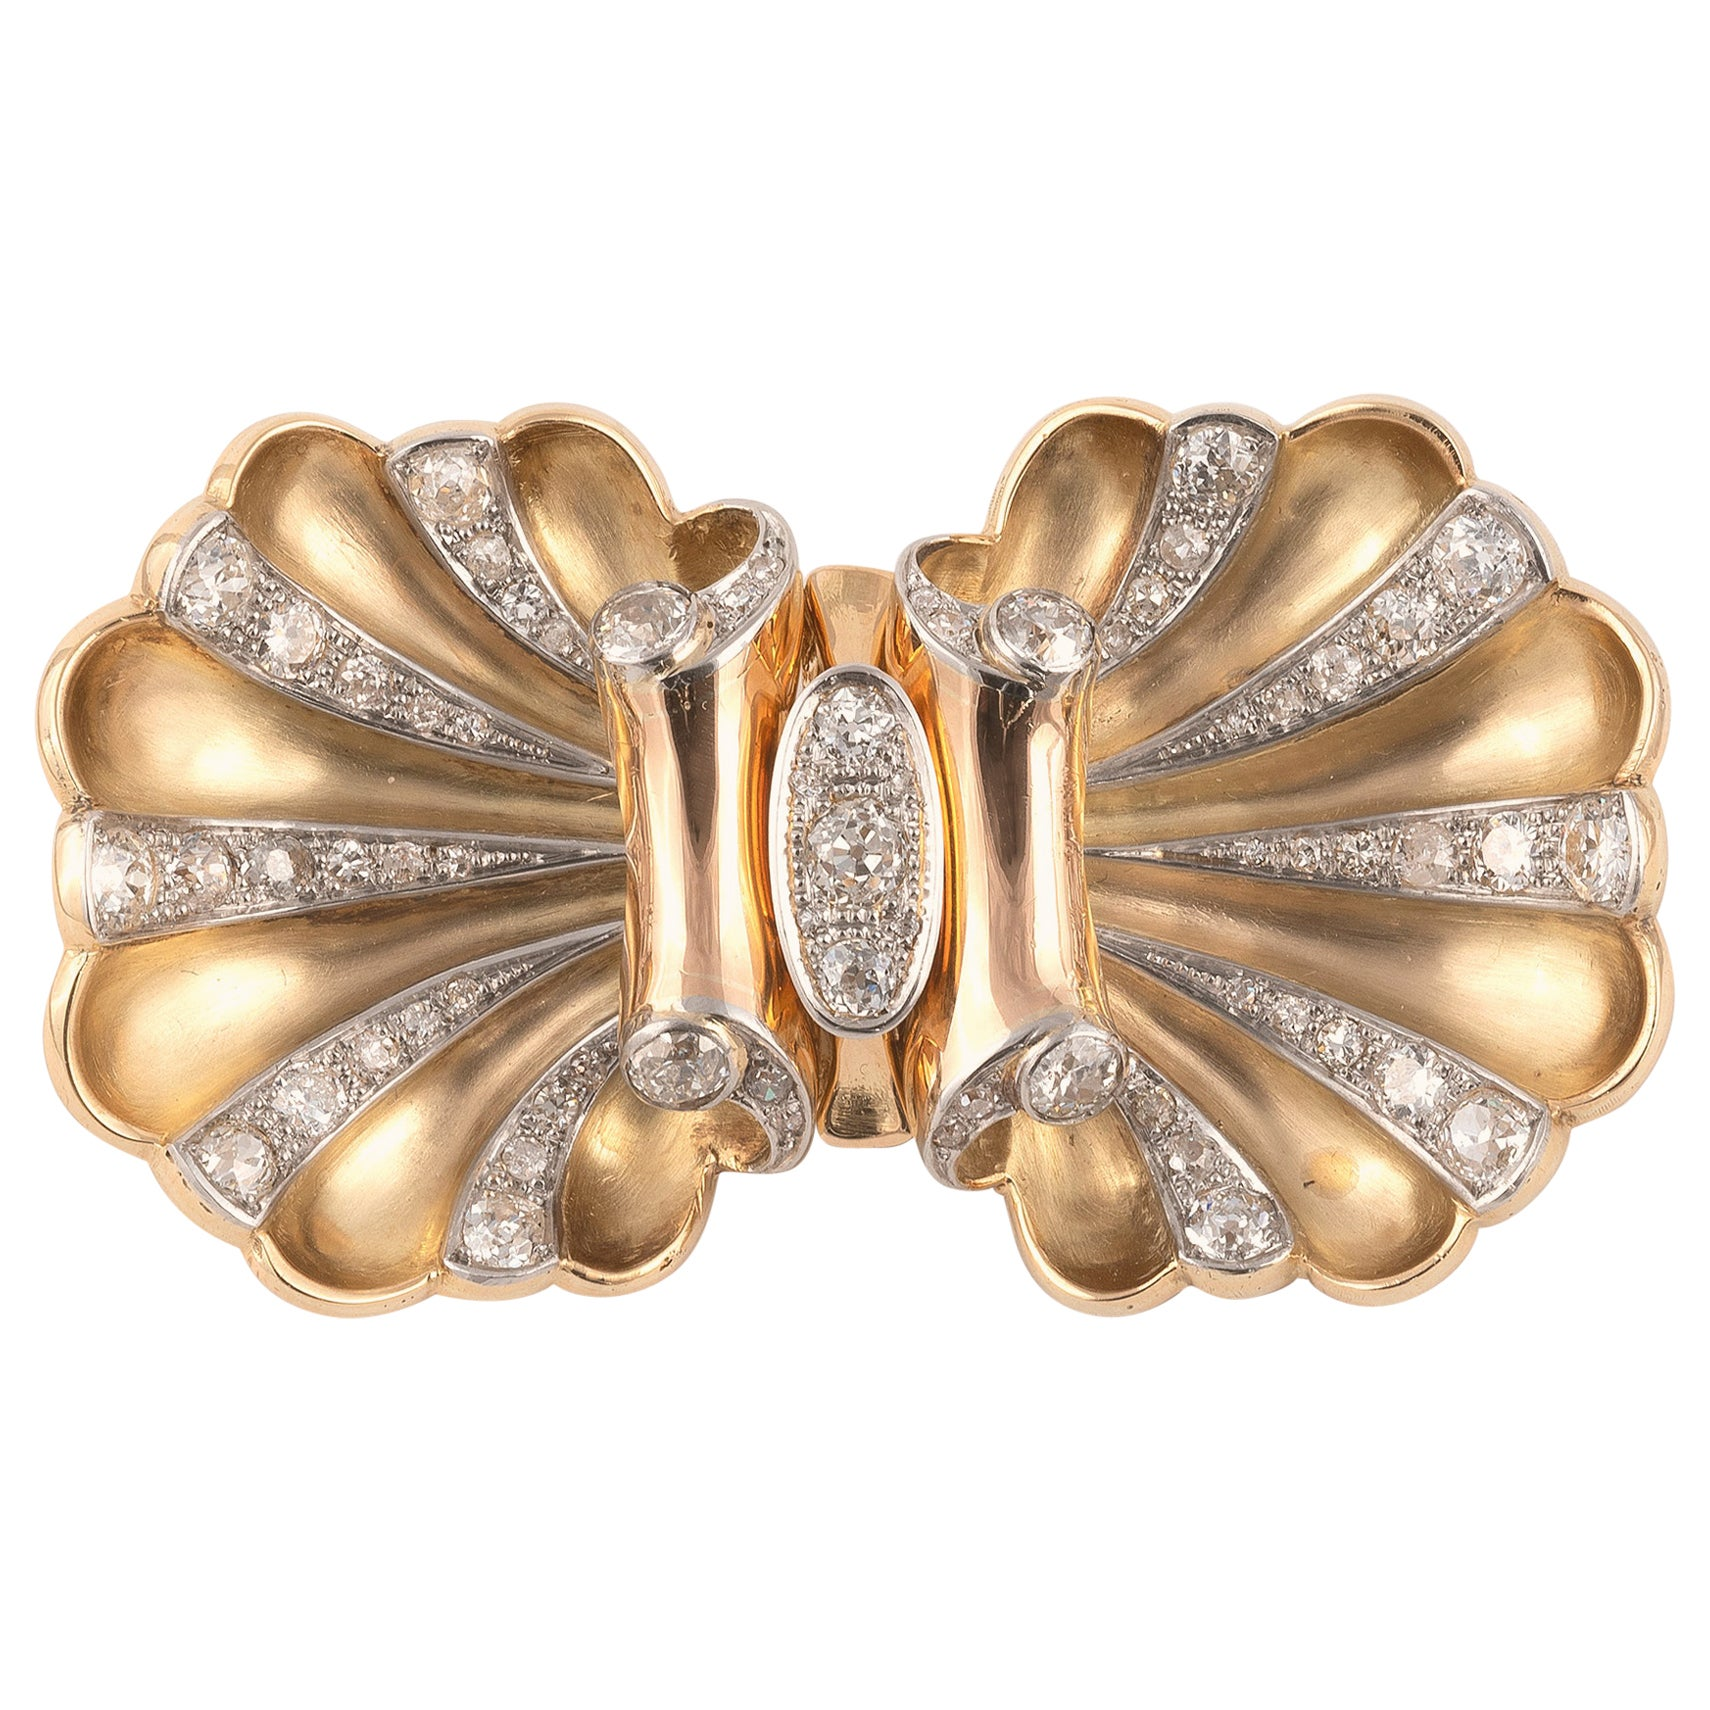 Diamond Double-Clip Brooch, circa 1940